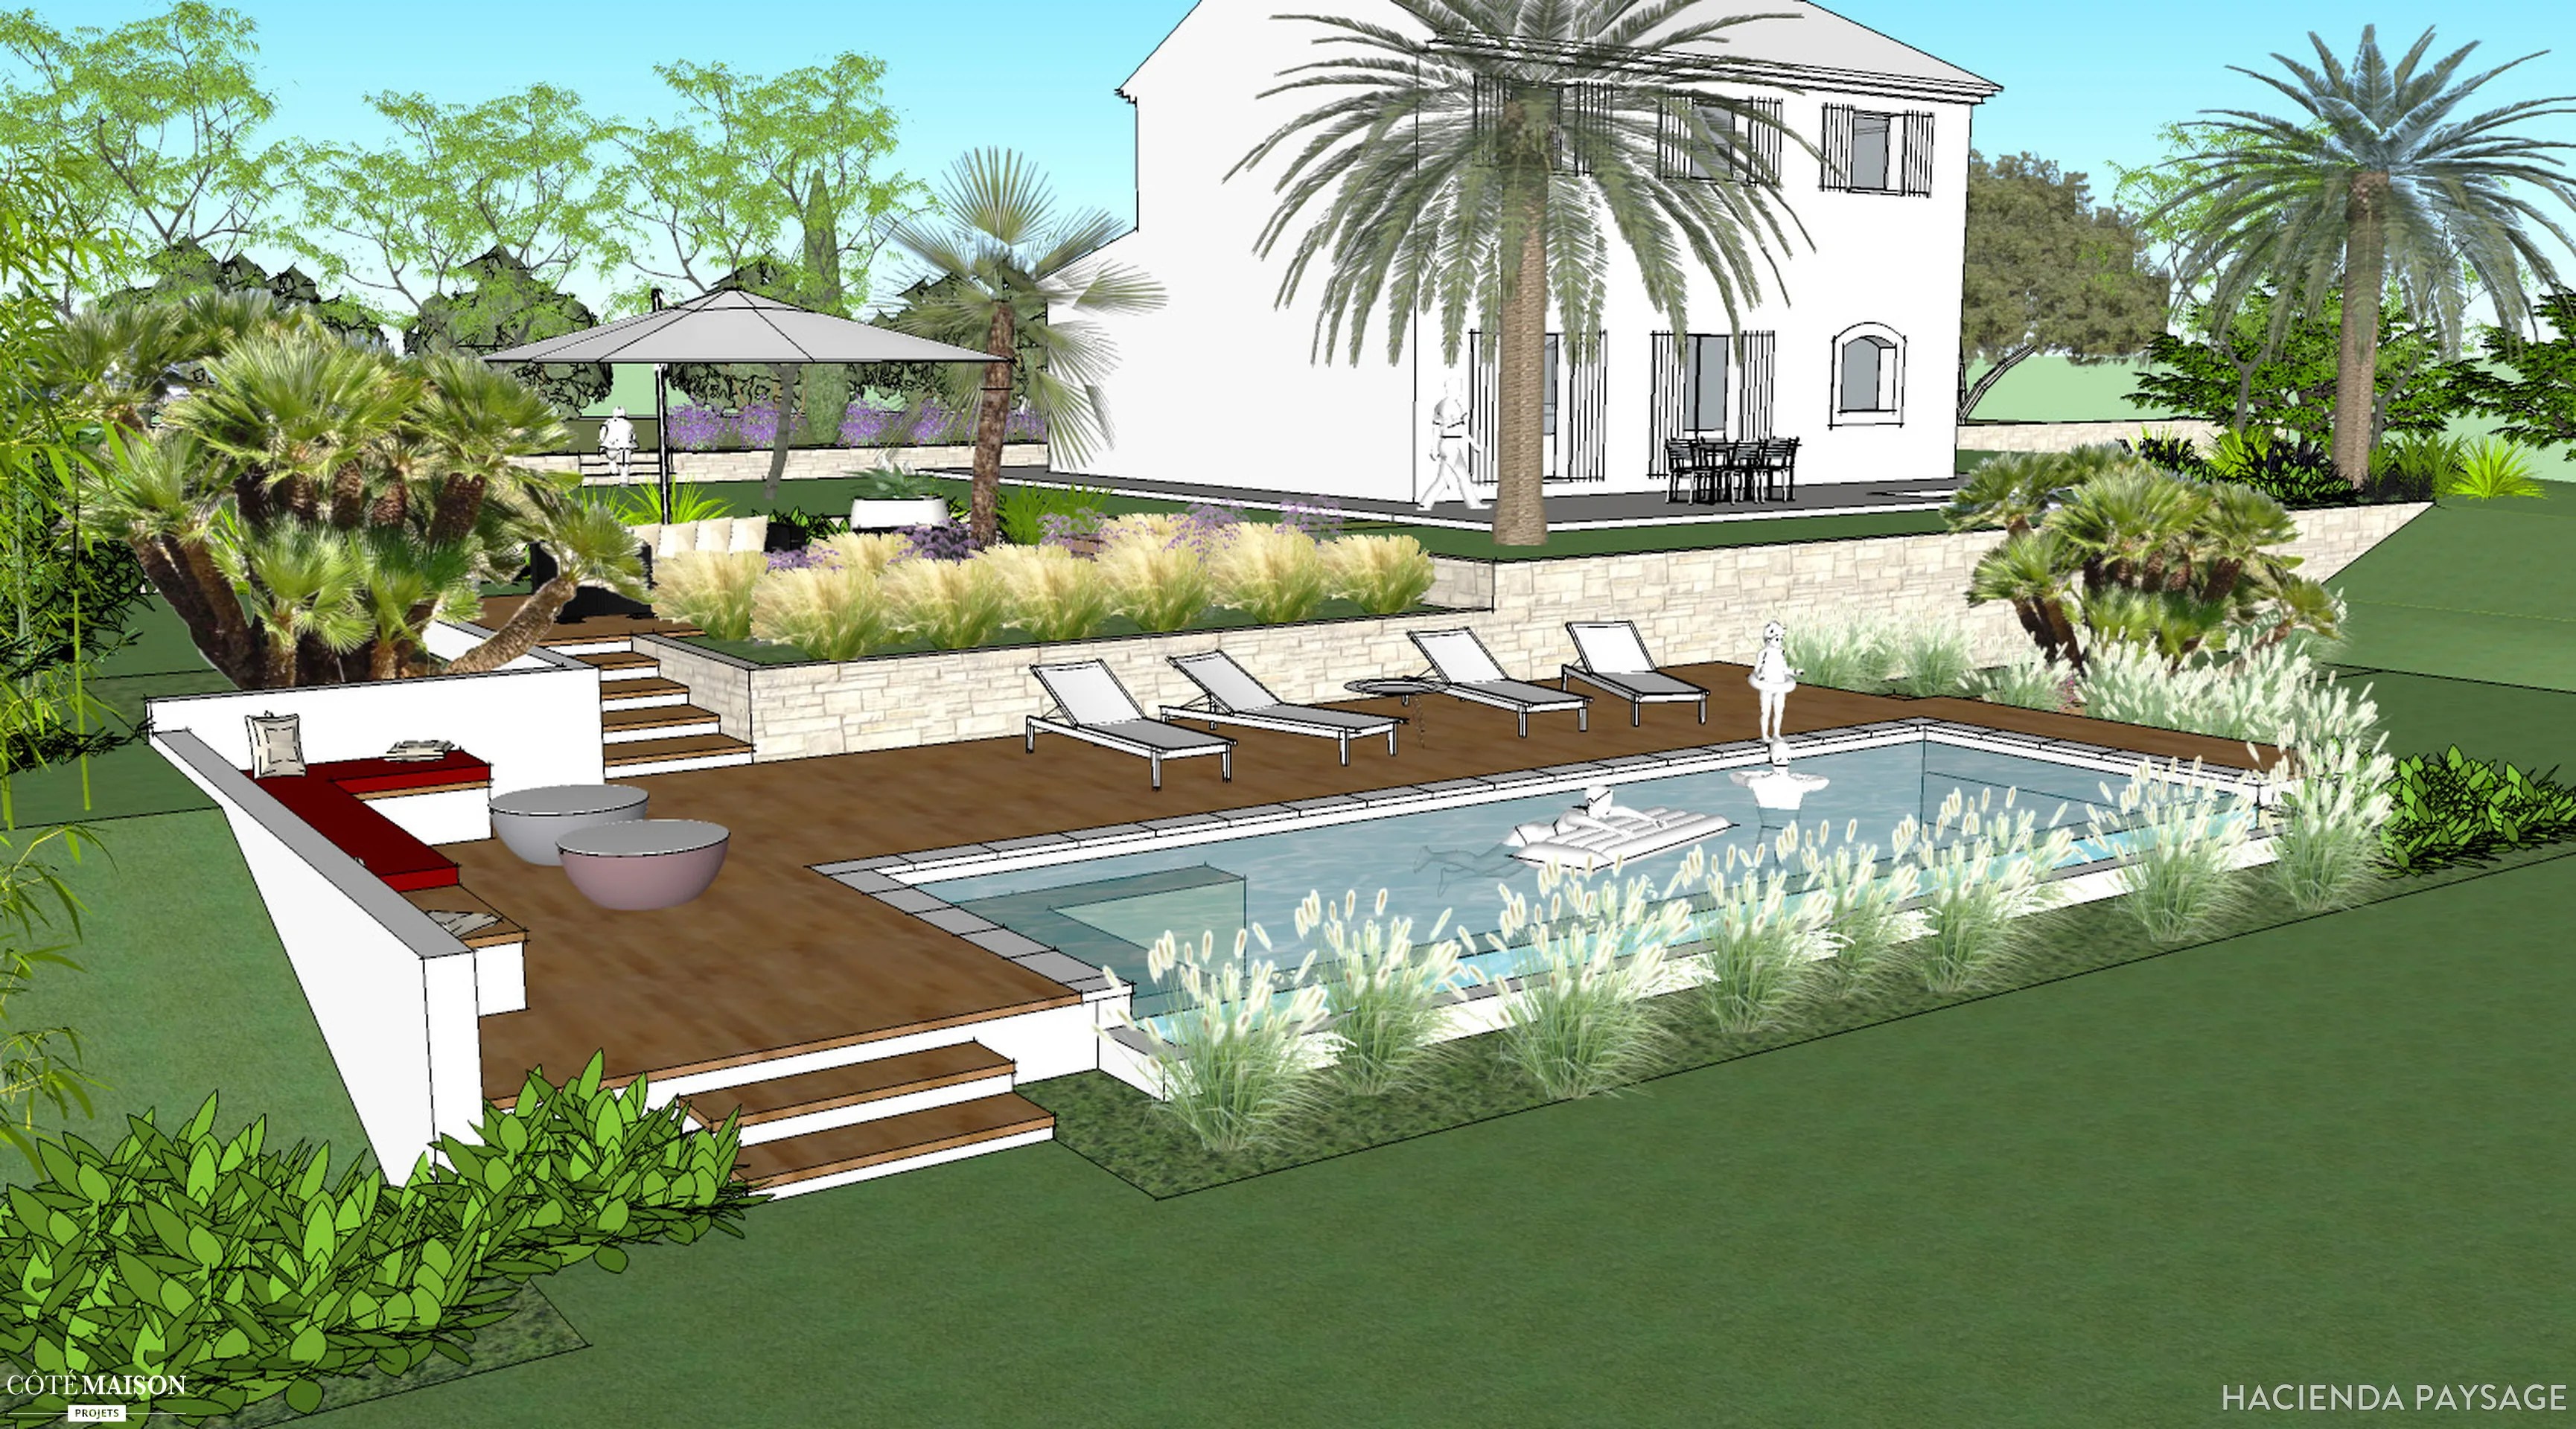 Amenagement Jardin Exterieur Mediterraneen Amenagement Jardin Mediterraneen Amenagement Jardin